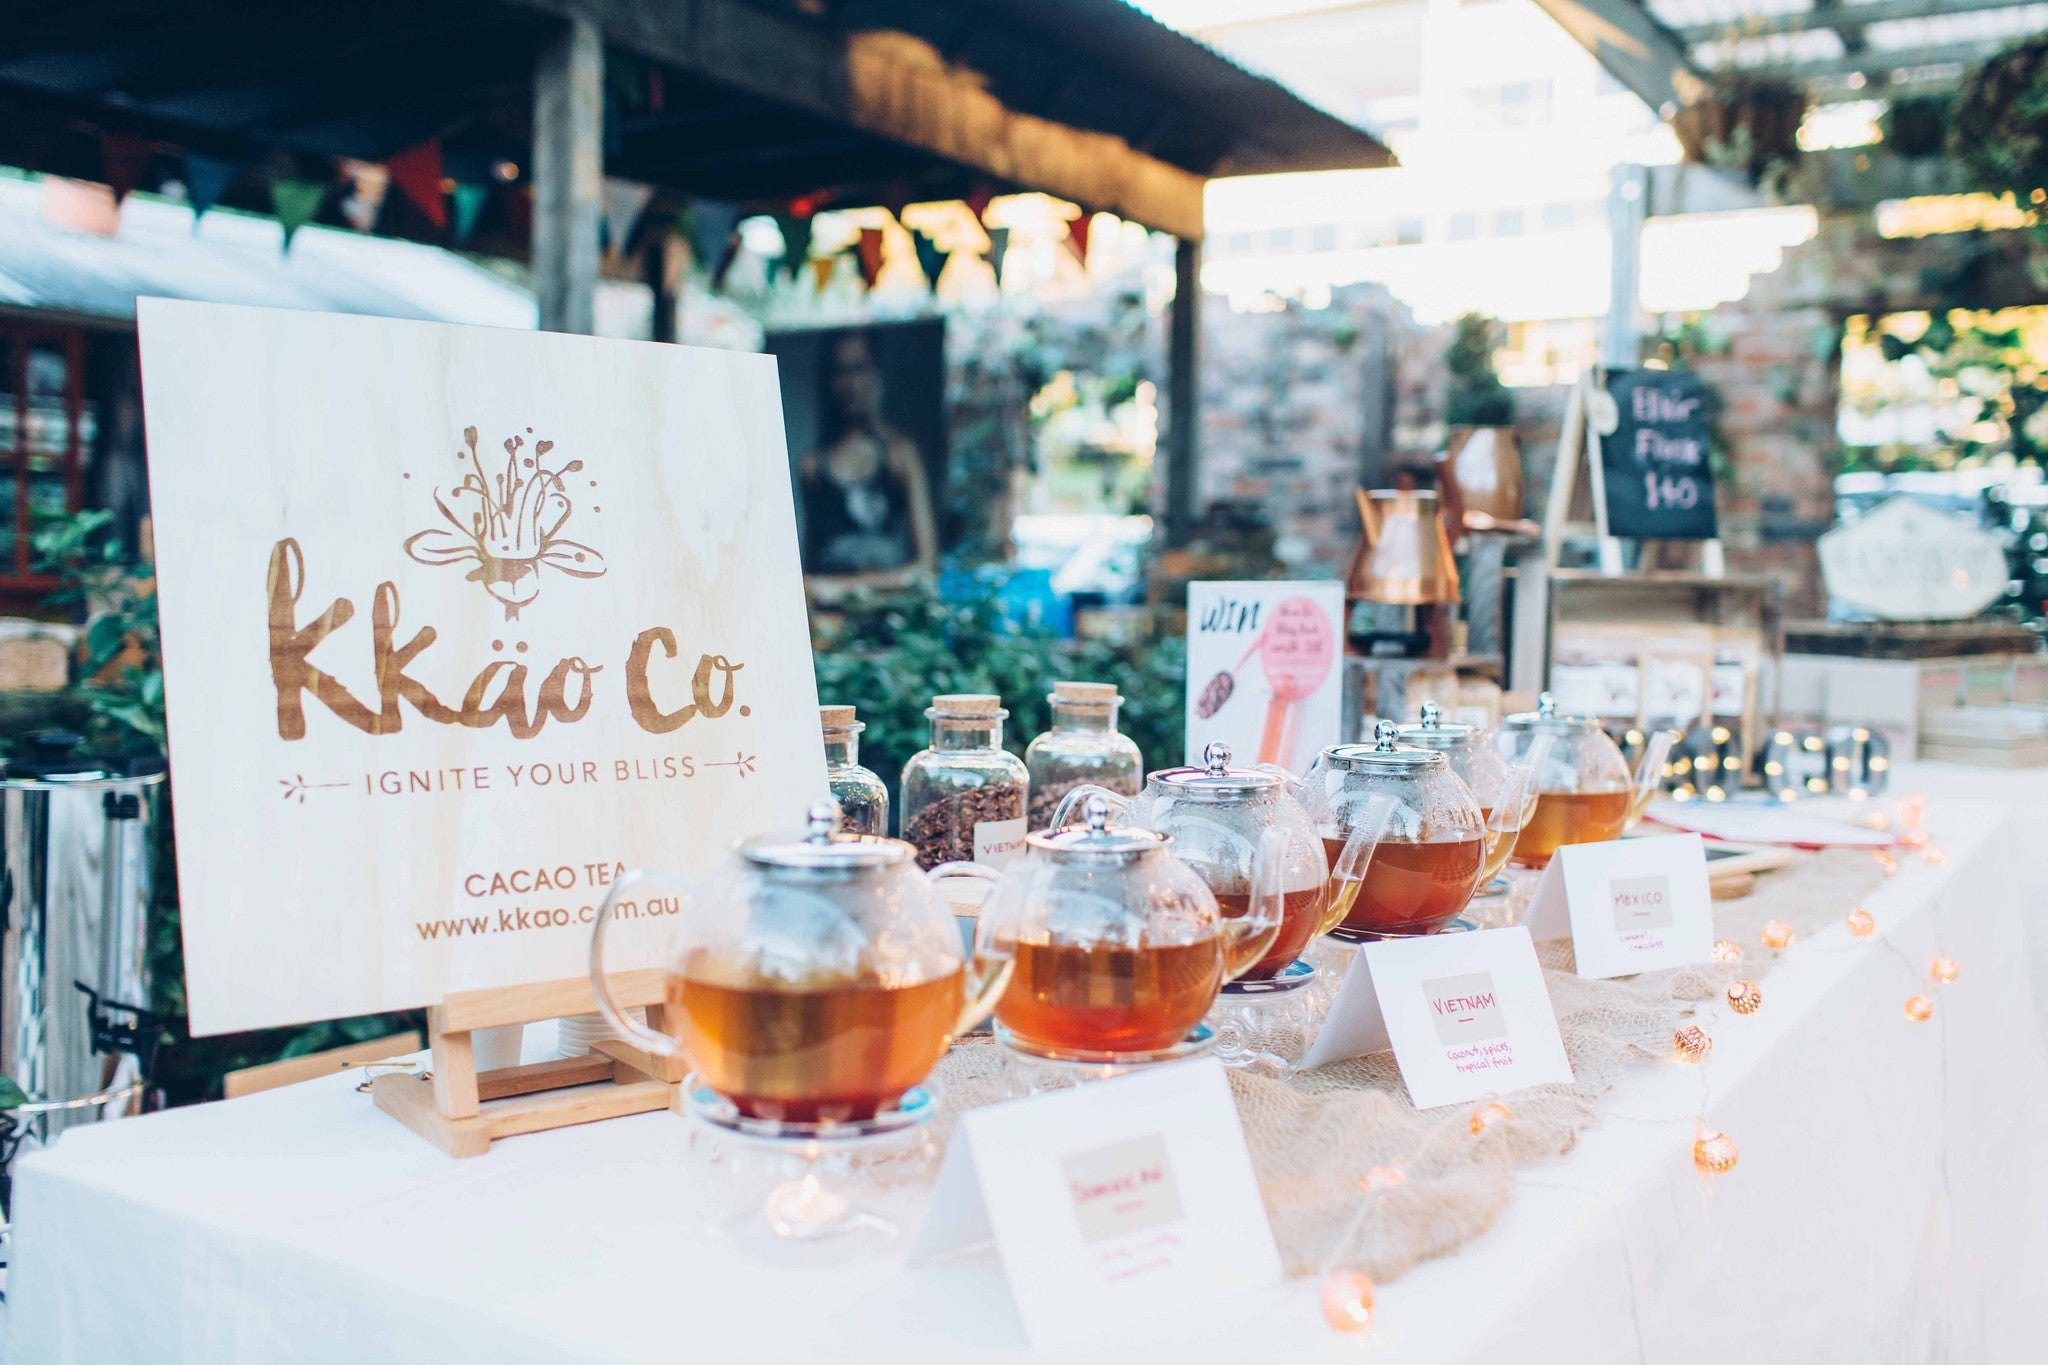 kkao Co. Launches @ the GoodnessMe Box Dessert Wholefood Night Markets